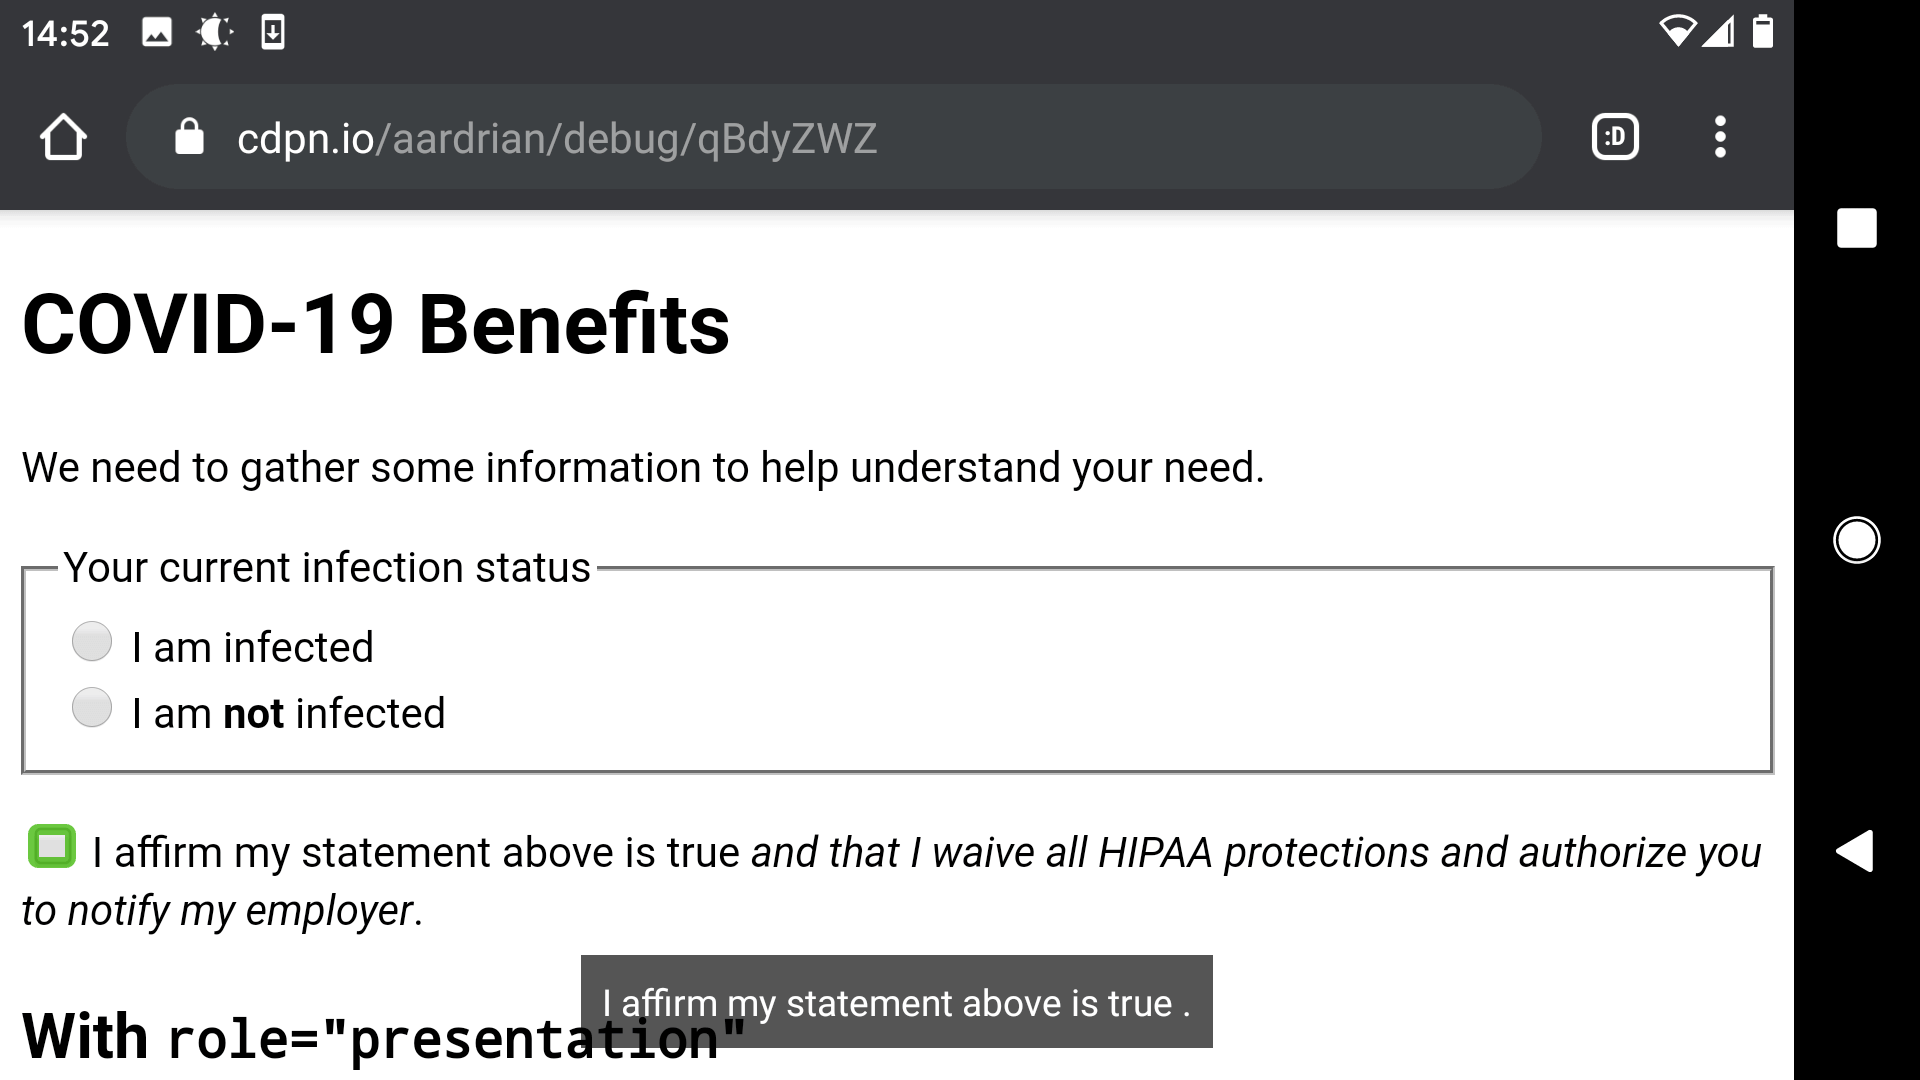 "Text caption from TalkBack with Chrome showing the name for the checkbox is ""I affirm my statement above is true"", not matching its visible text of ""I affirm my statement above is true and that I waive all HIPAA protections and authorize you to notify my employer"" where the second clause is italic."